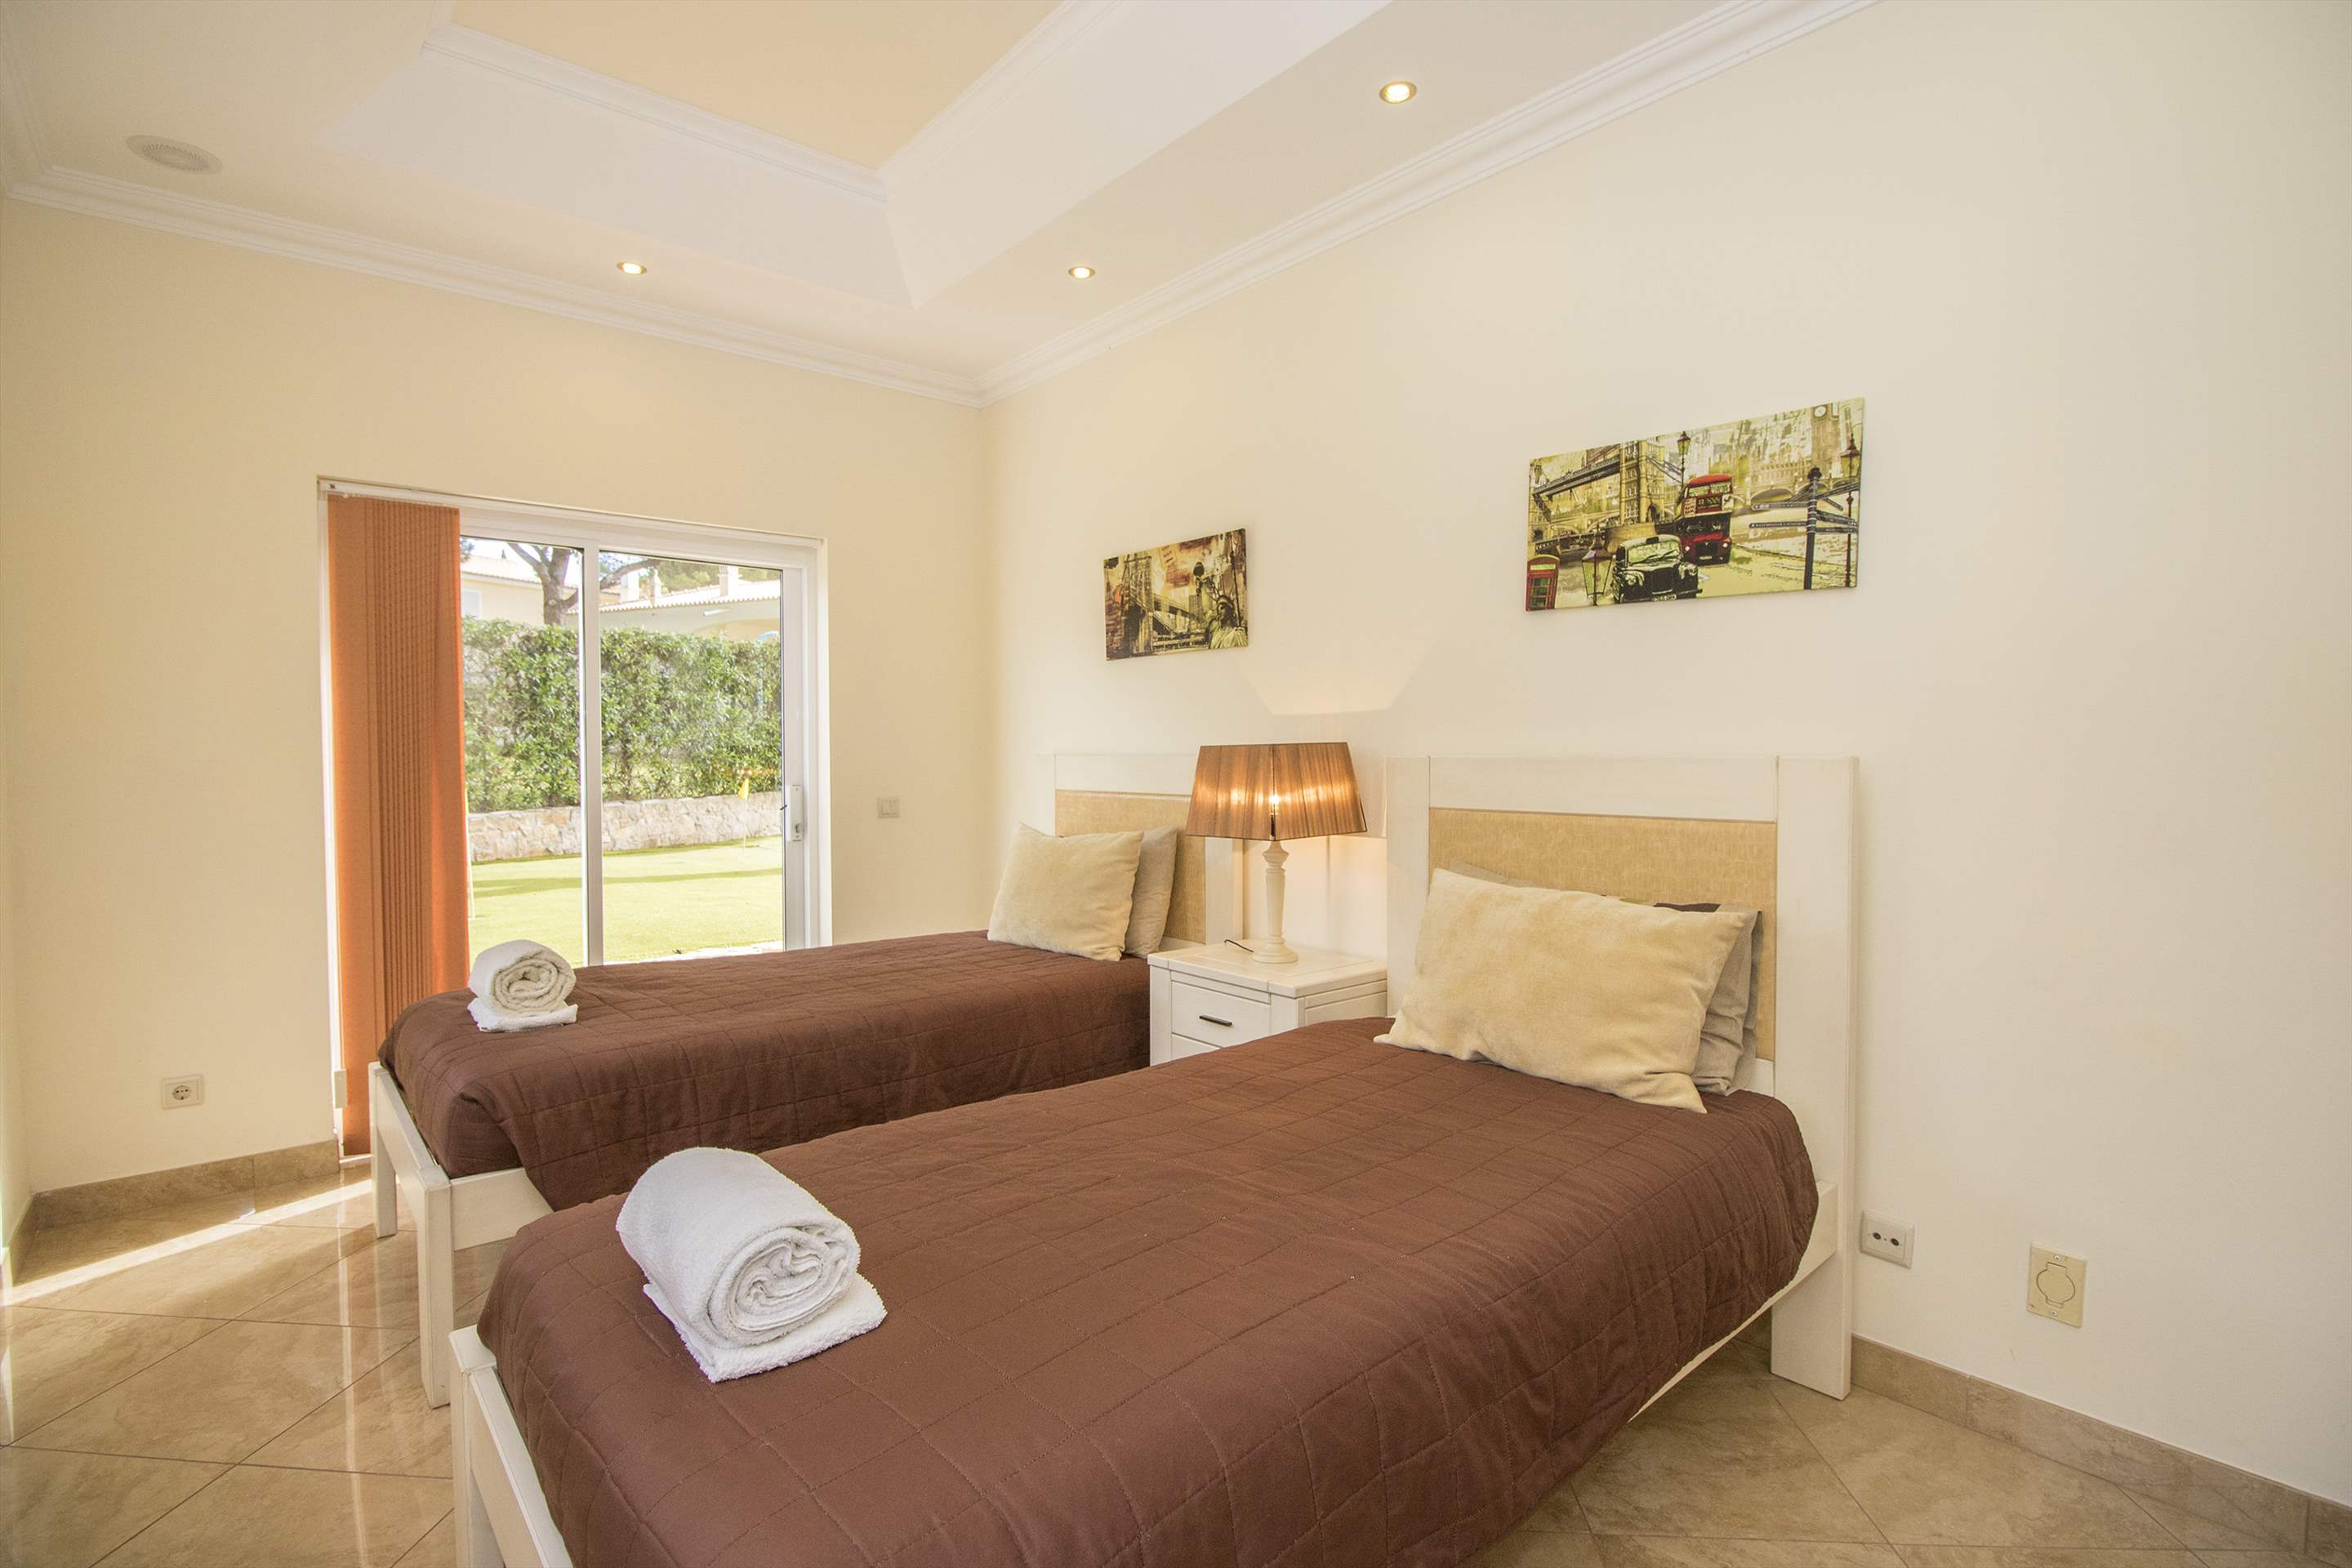 Villa Hera, 6 bedroom villa in Vilamoura Area, Algarve Photo #22